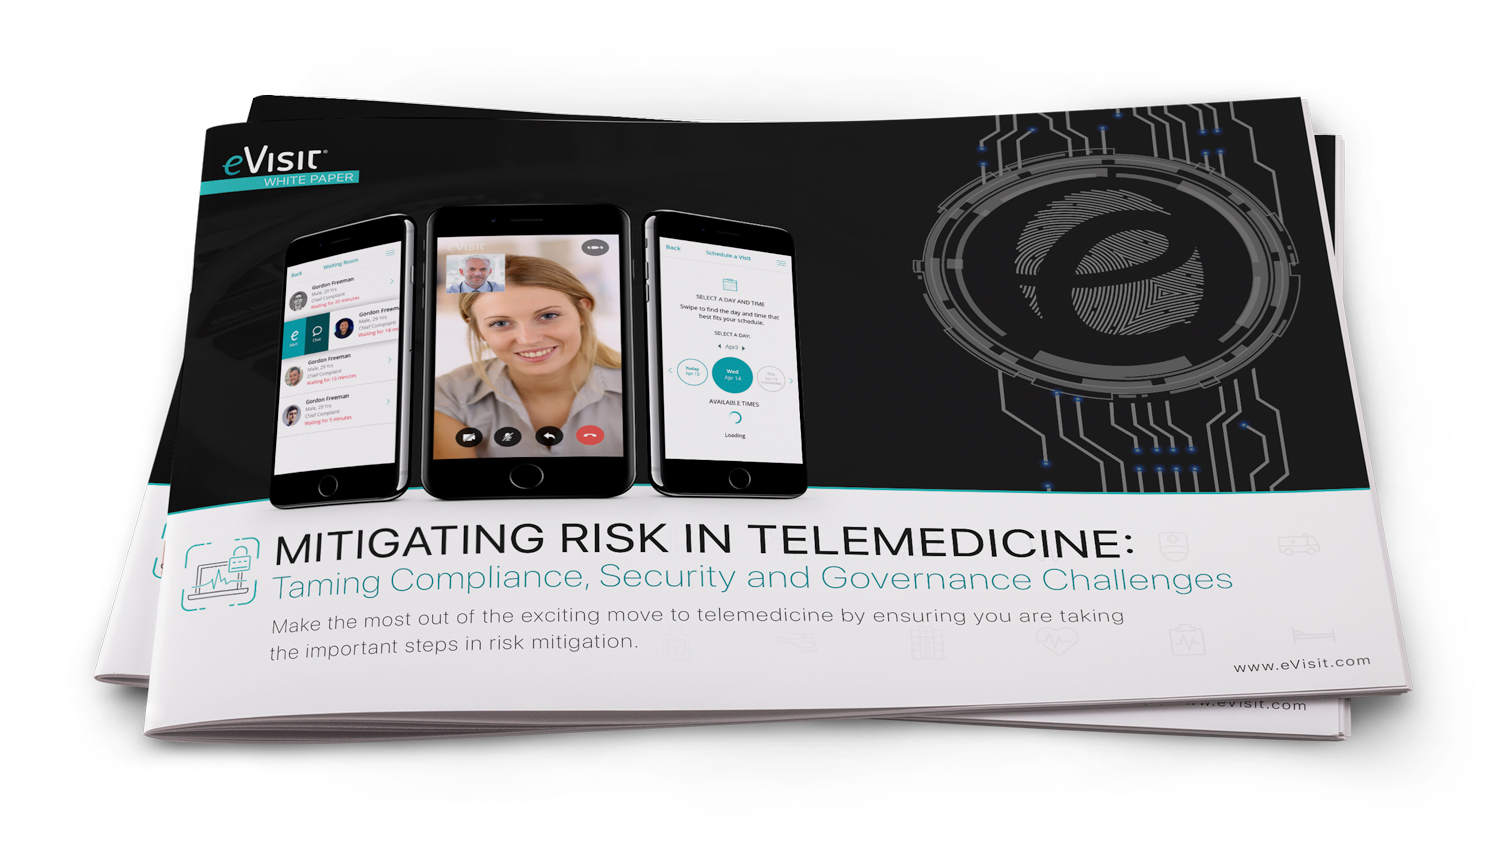 Mitigating Risk in Telemedicine: Taming Compliance, Security and Governance Challenges [White Paper]